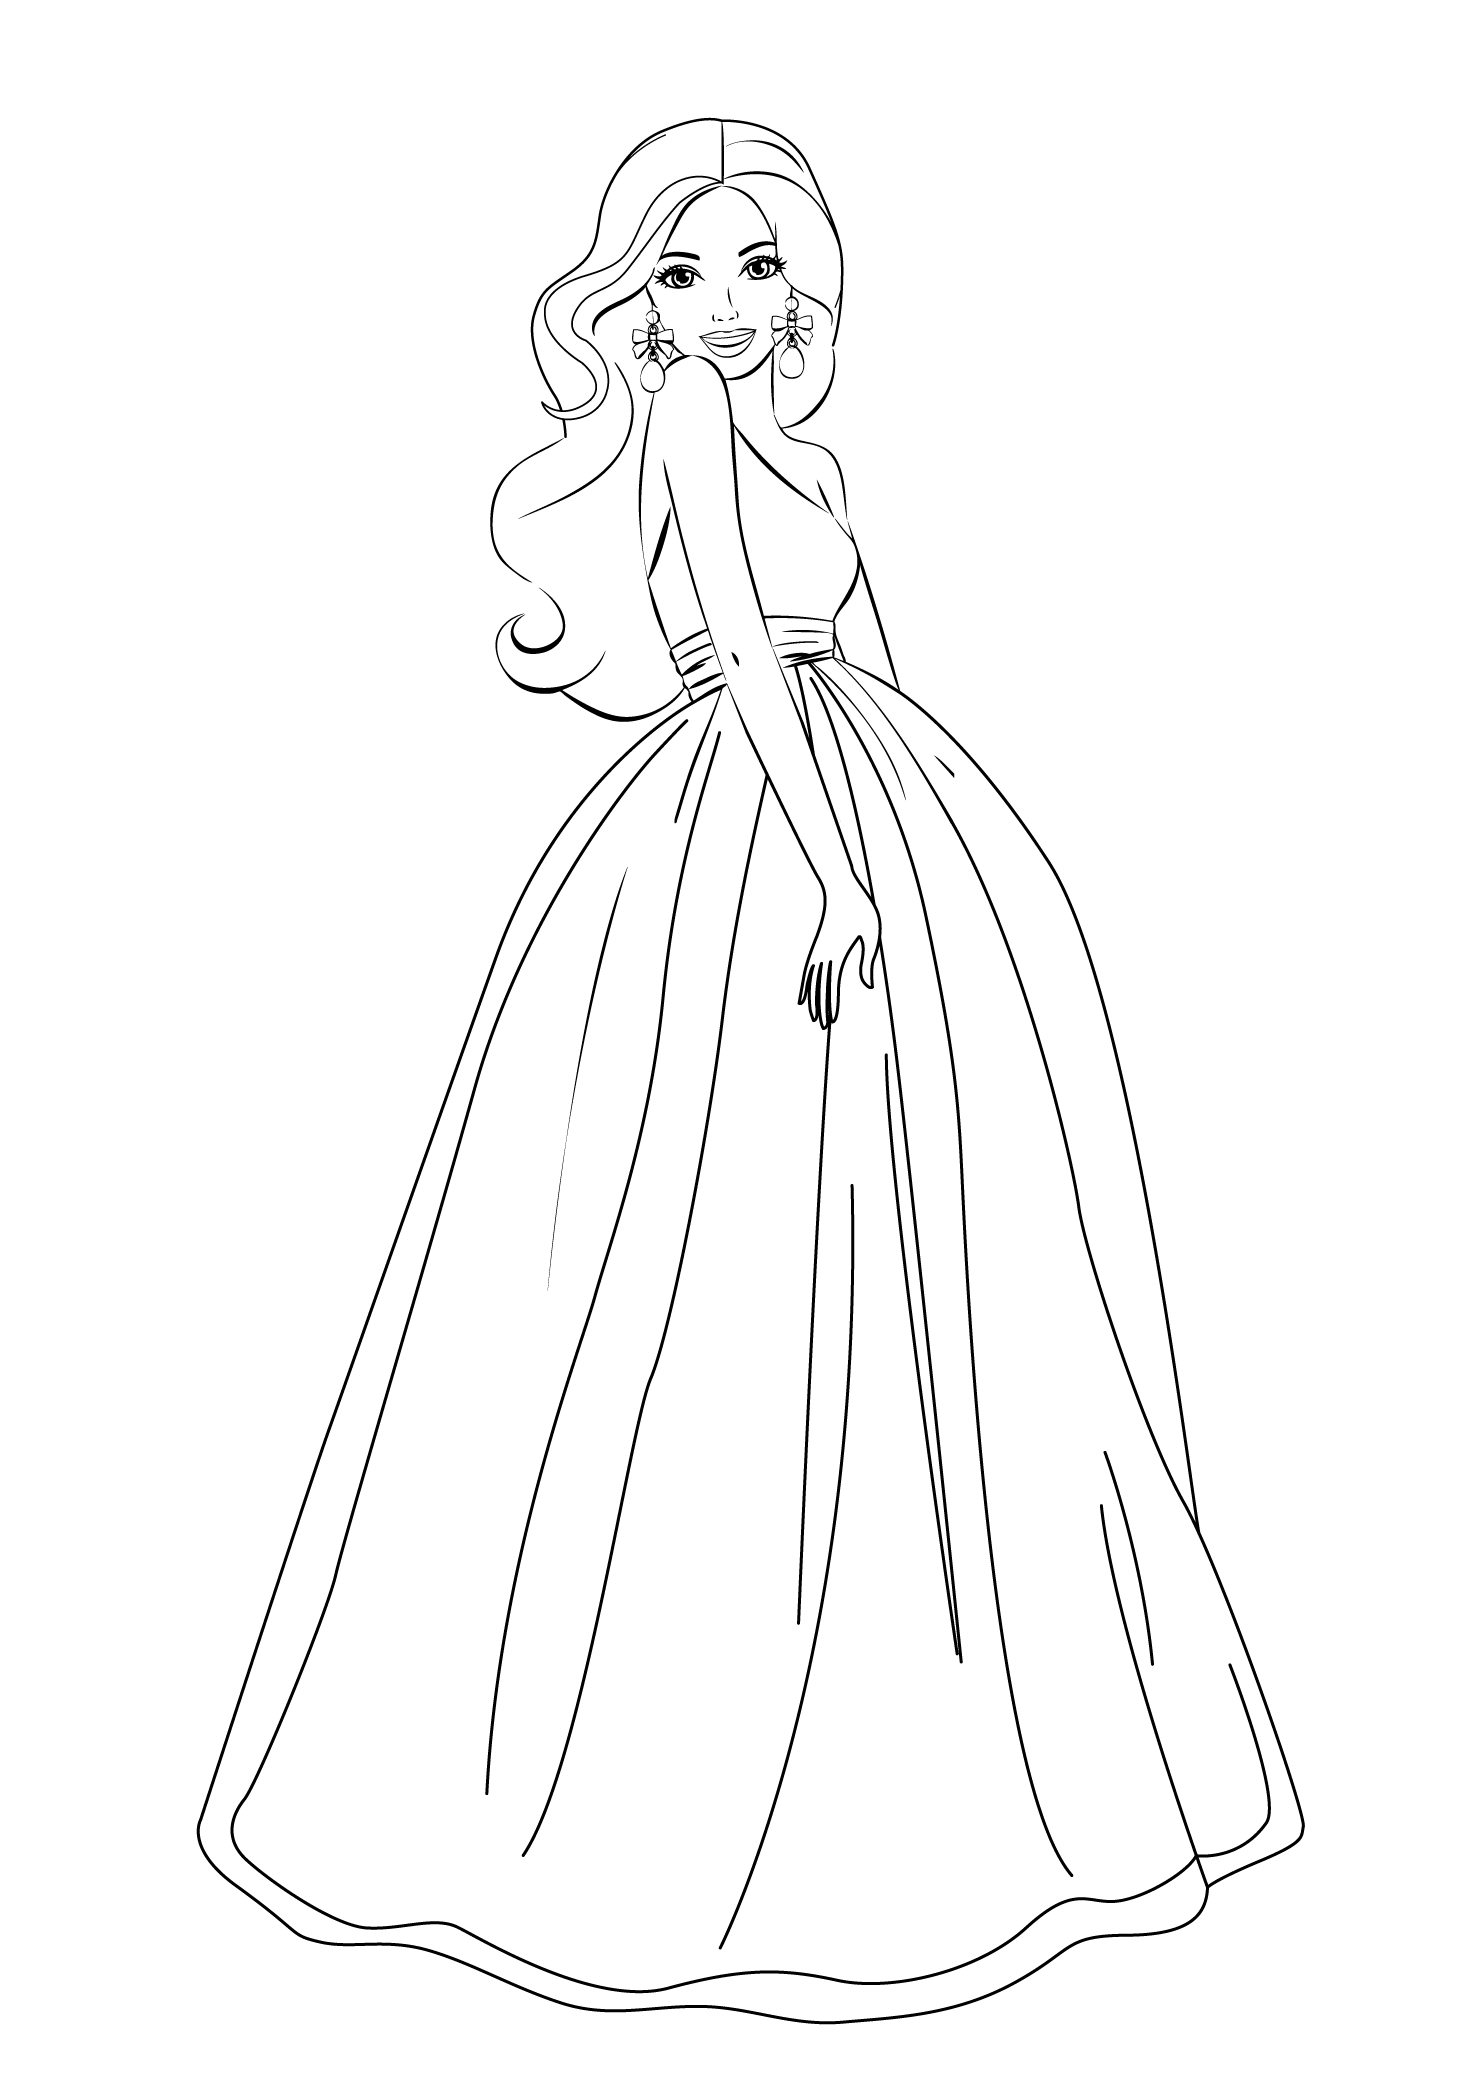 Barbie coloring pages for girls free printable  Colorir barbie